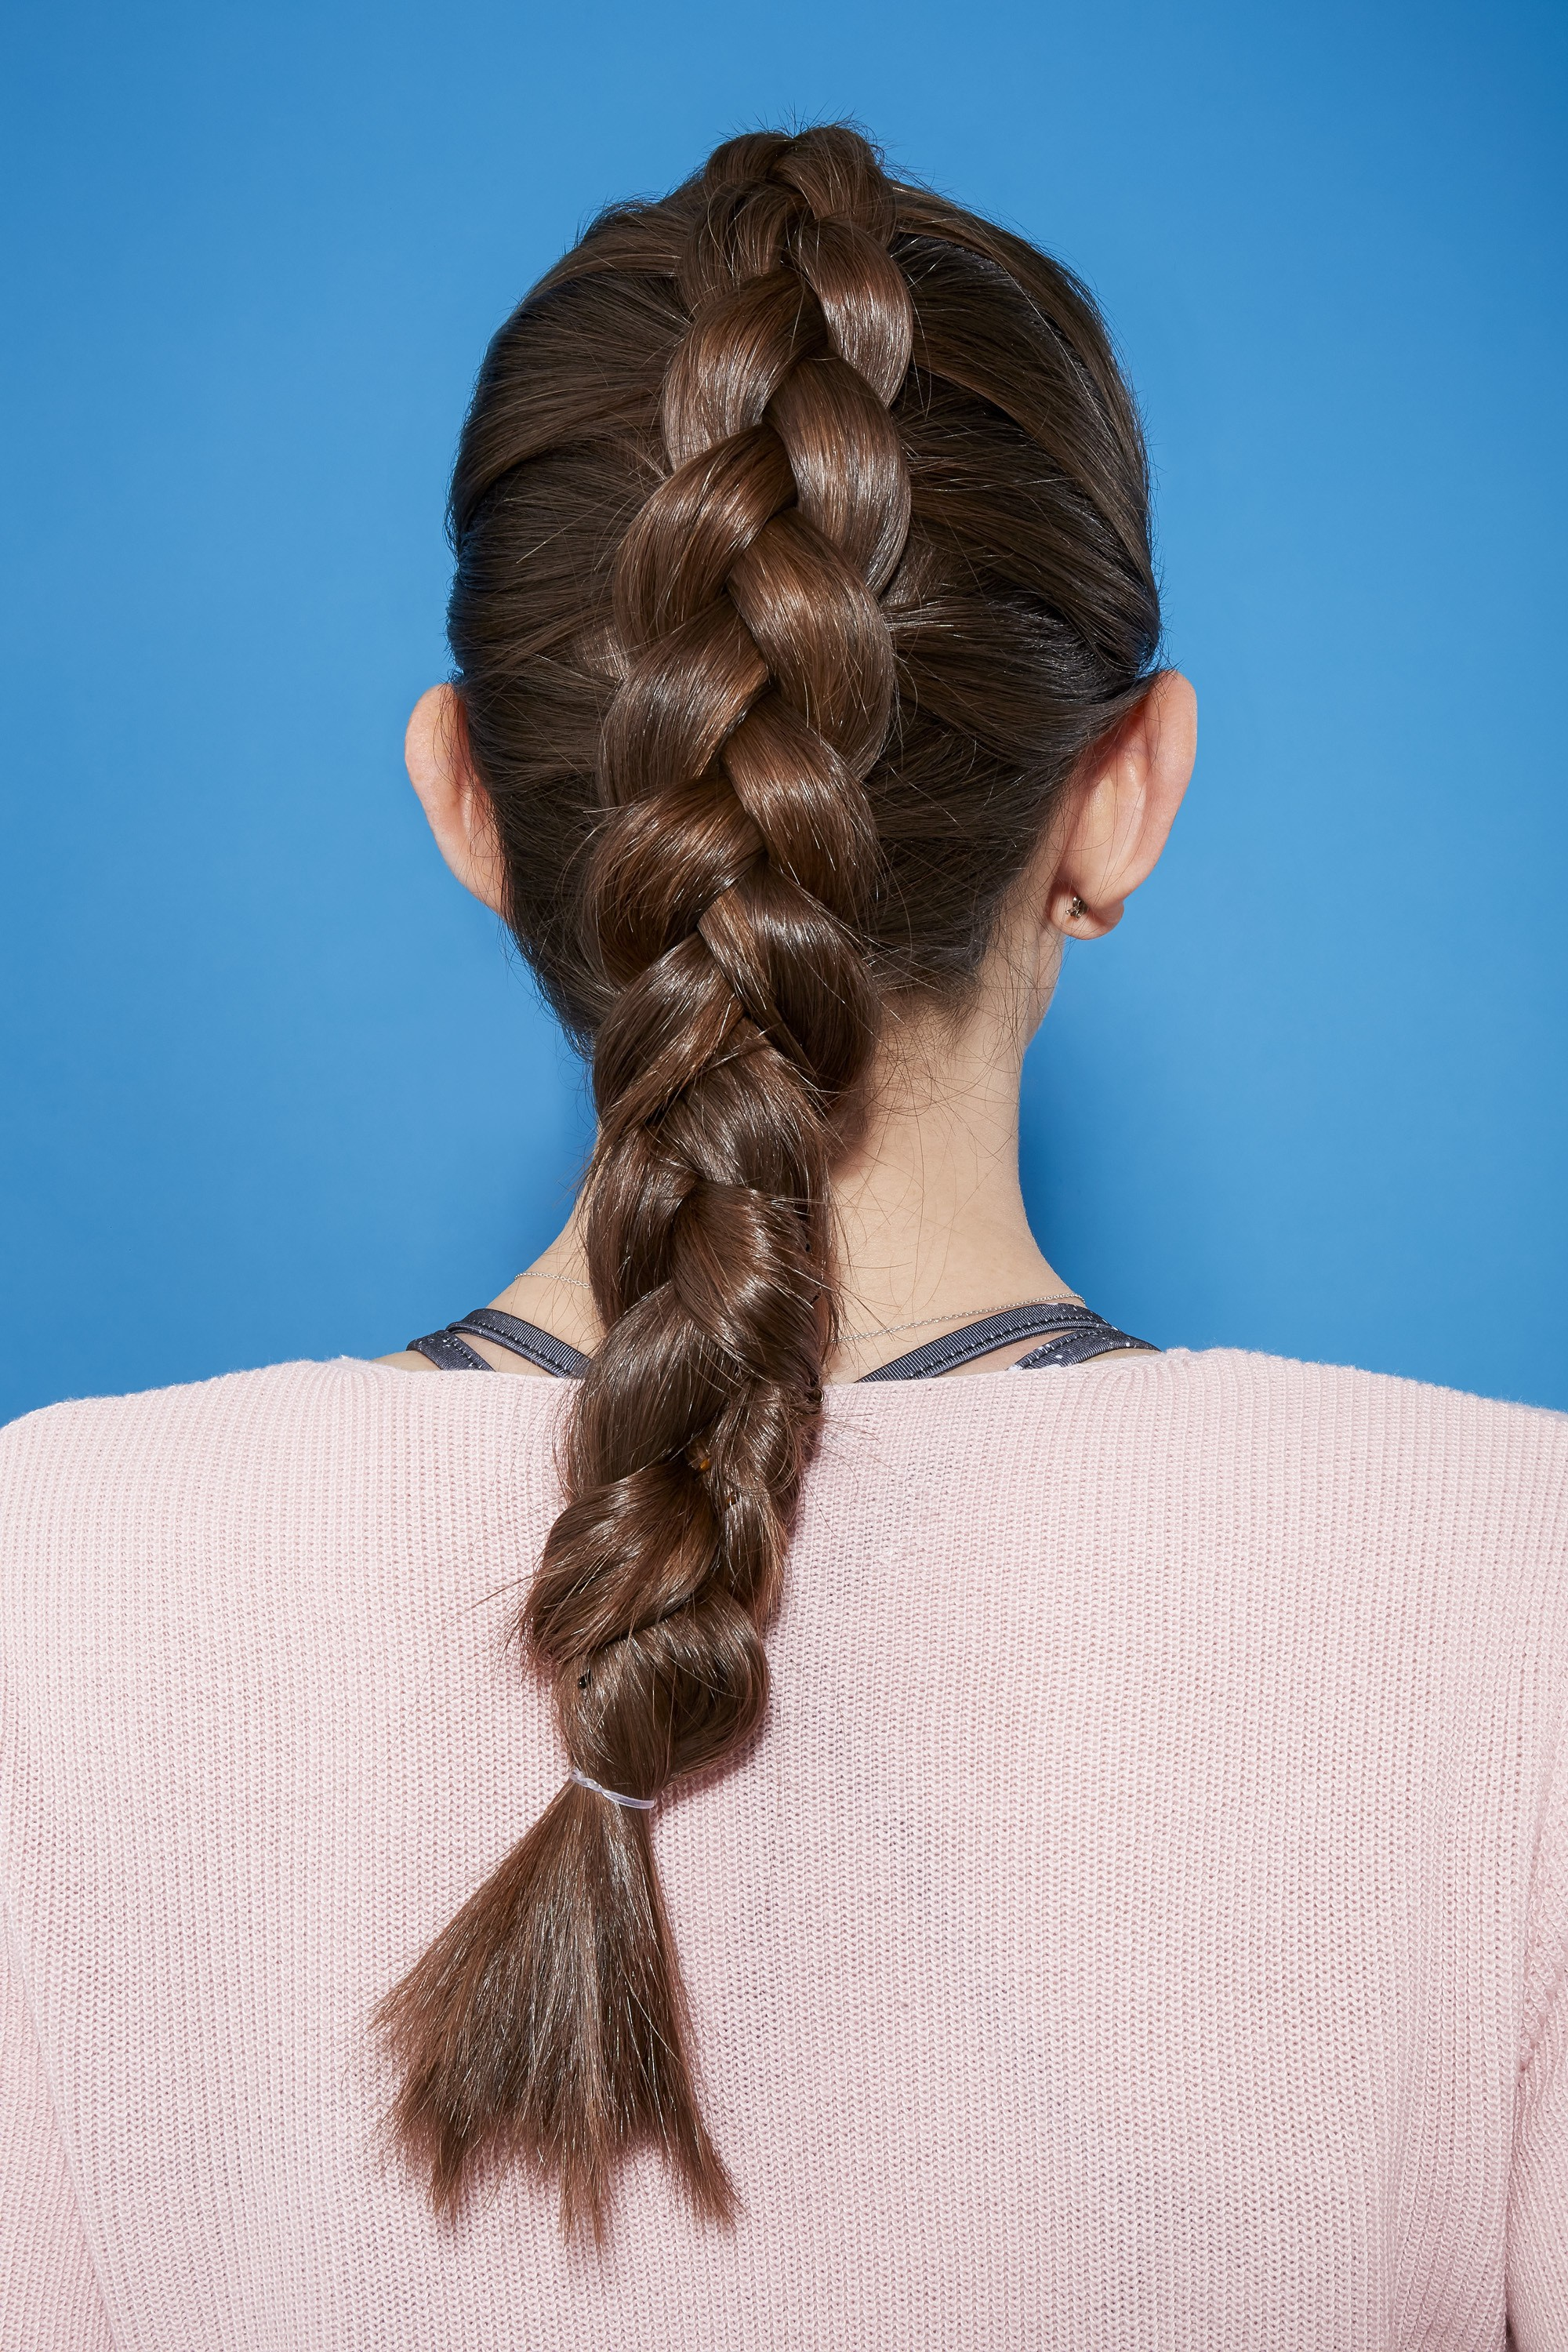 Easy braids for long hair: Back view of a brunette with long hair in a Dutch braid hairstyle, wearing a sports bra and pink gym top against a blue background